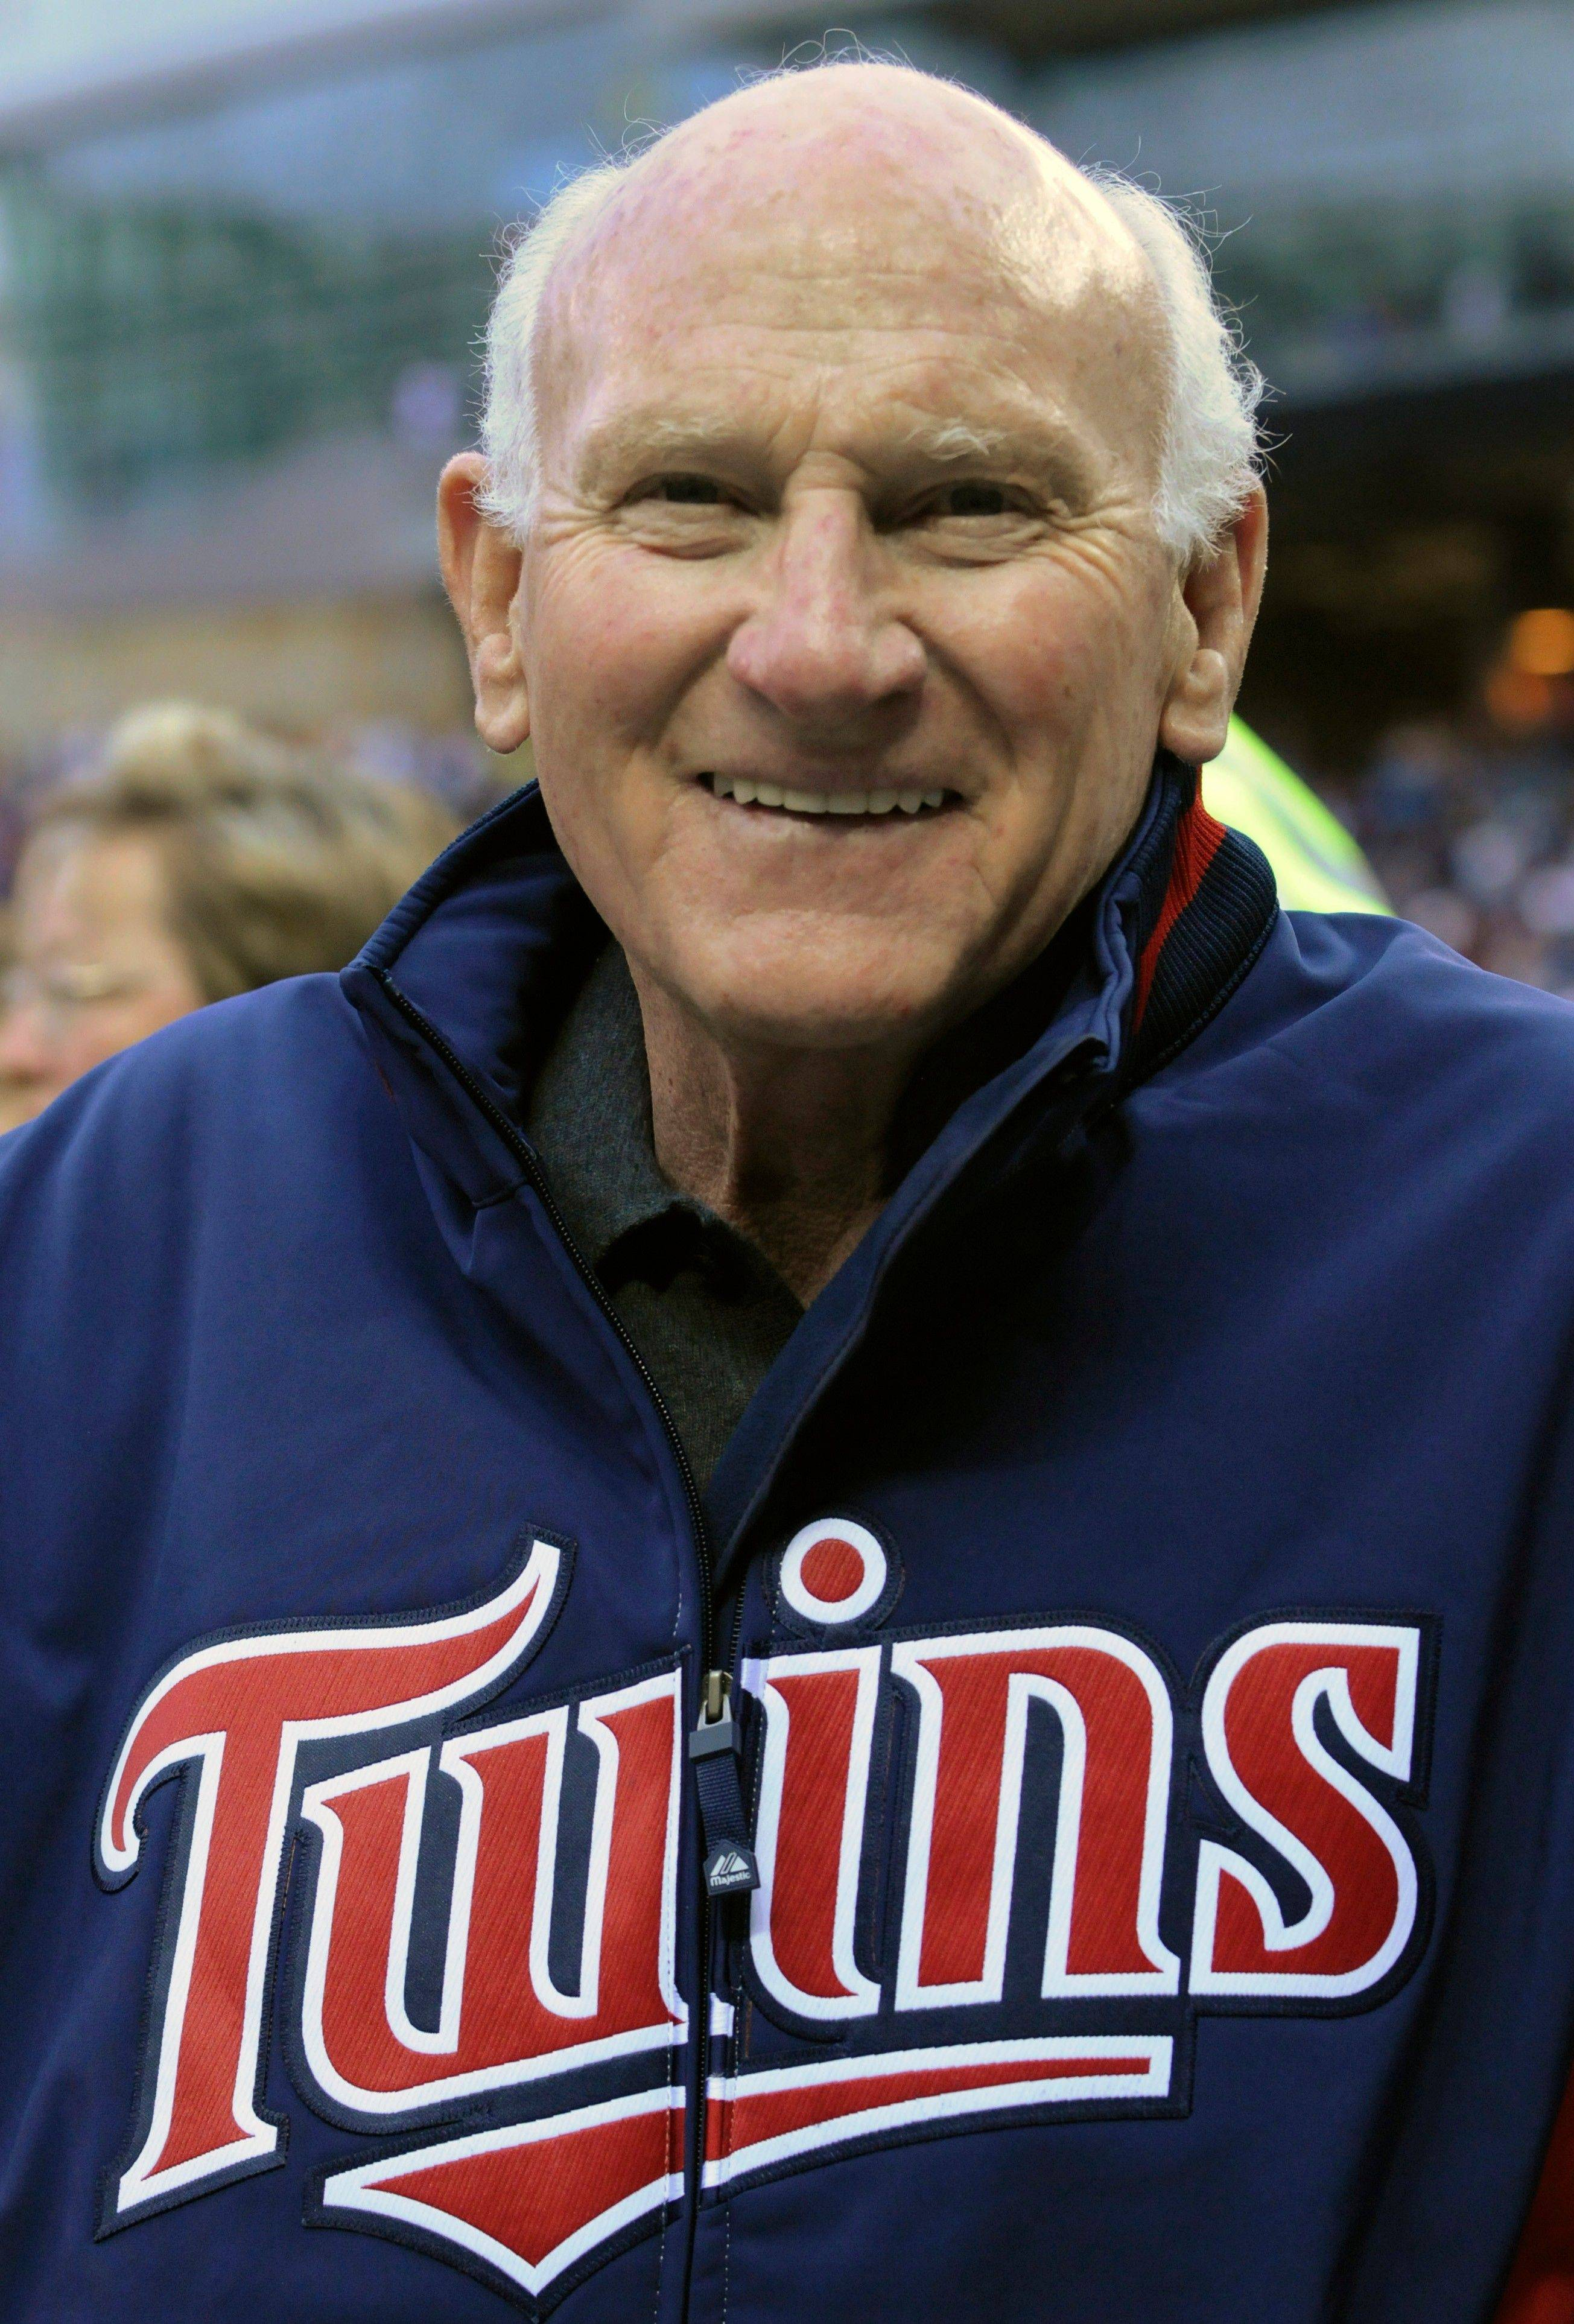 Former Minnesota Twins player and Hall of Famer Harmon Killebrew is receiving treatment at the Mayo Clinic after being diagnosed with esophageal cancer.